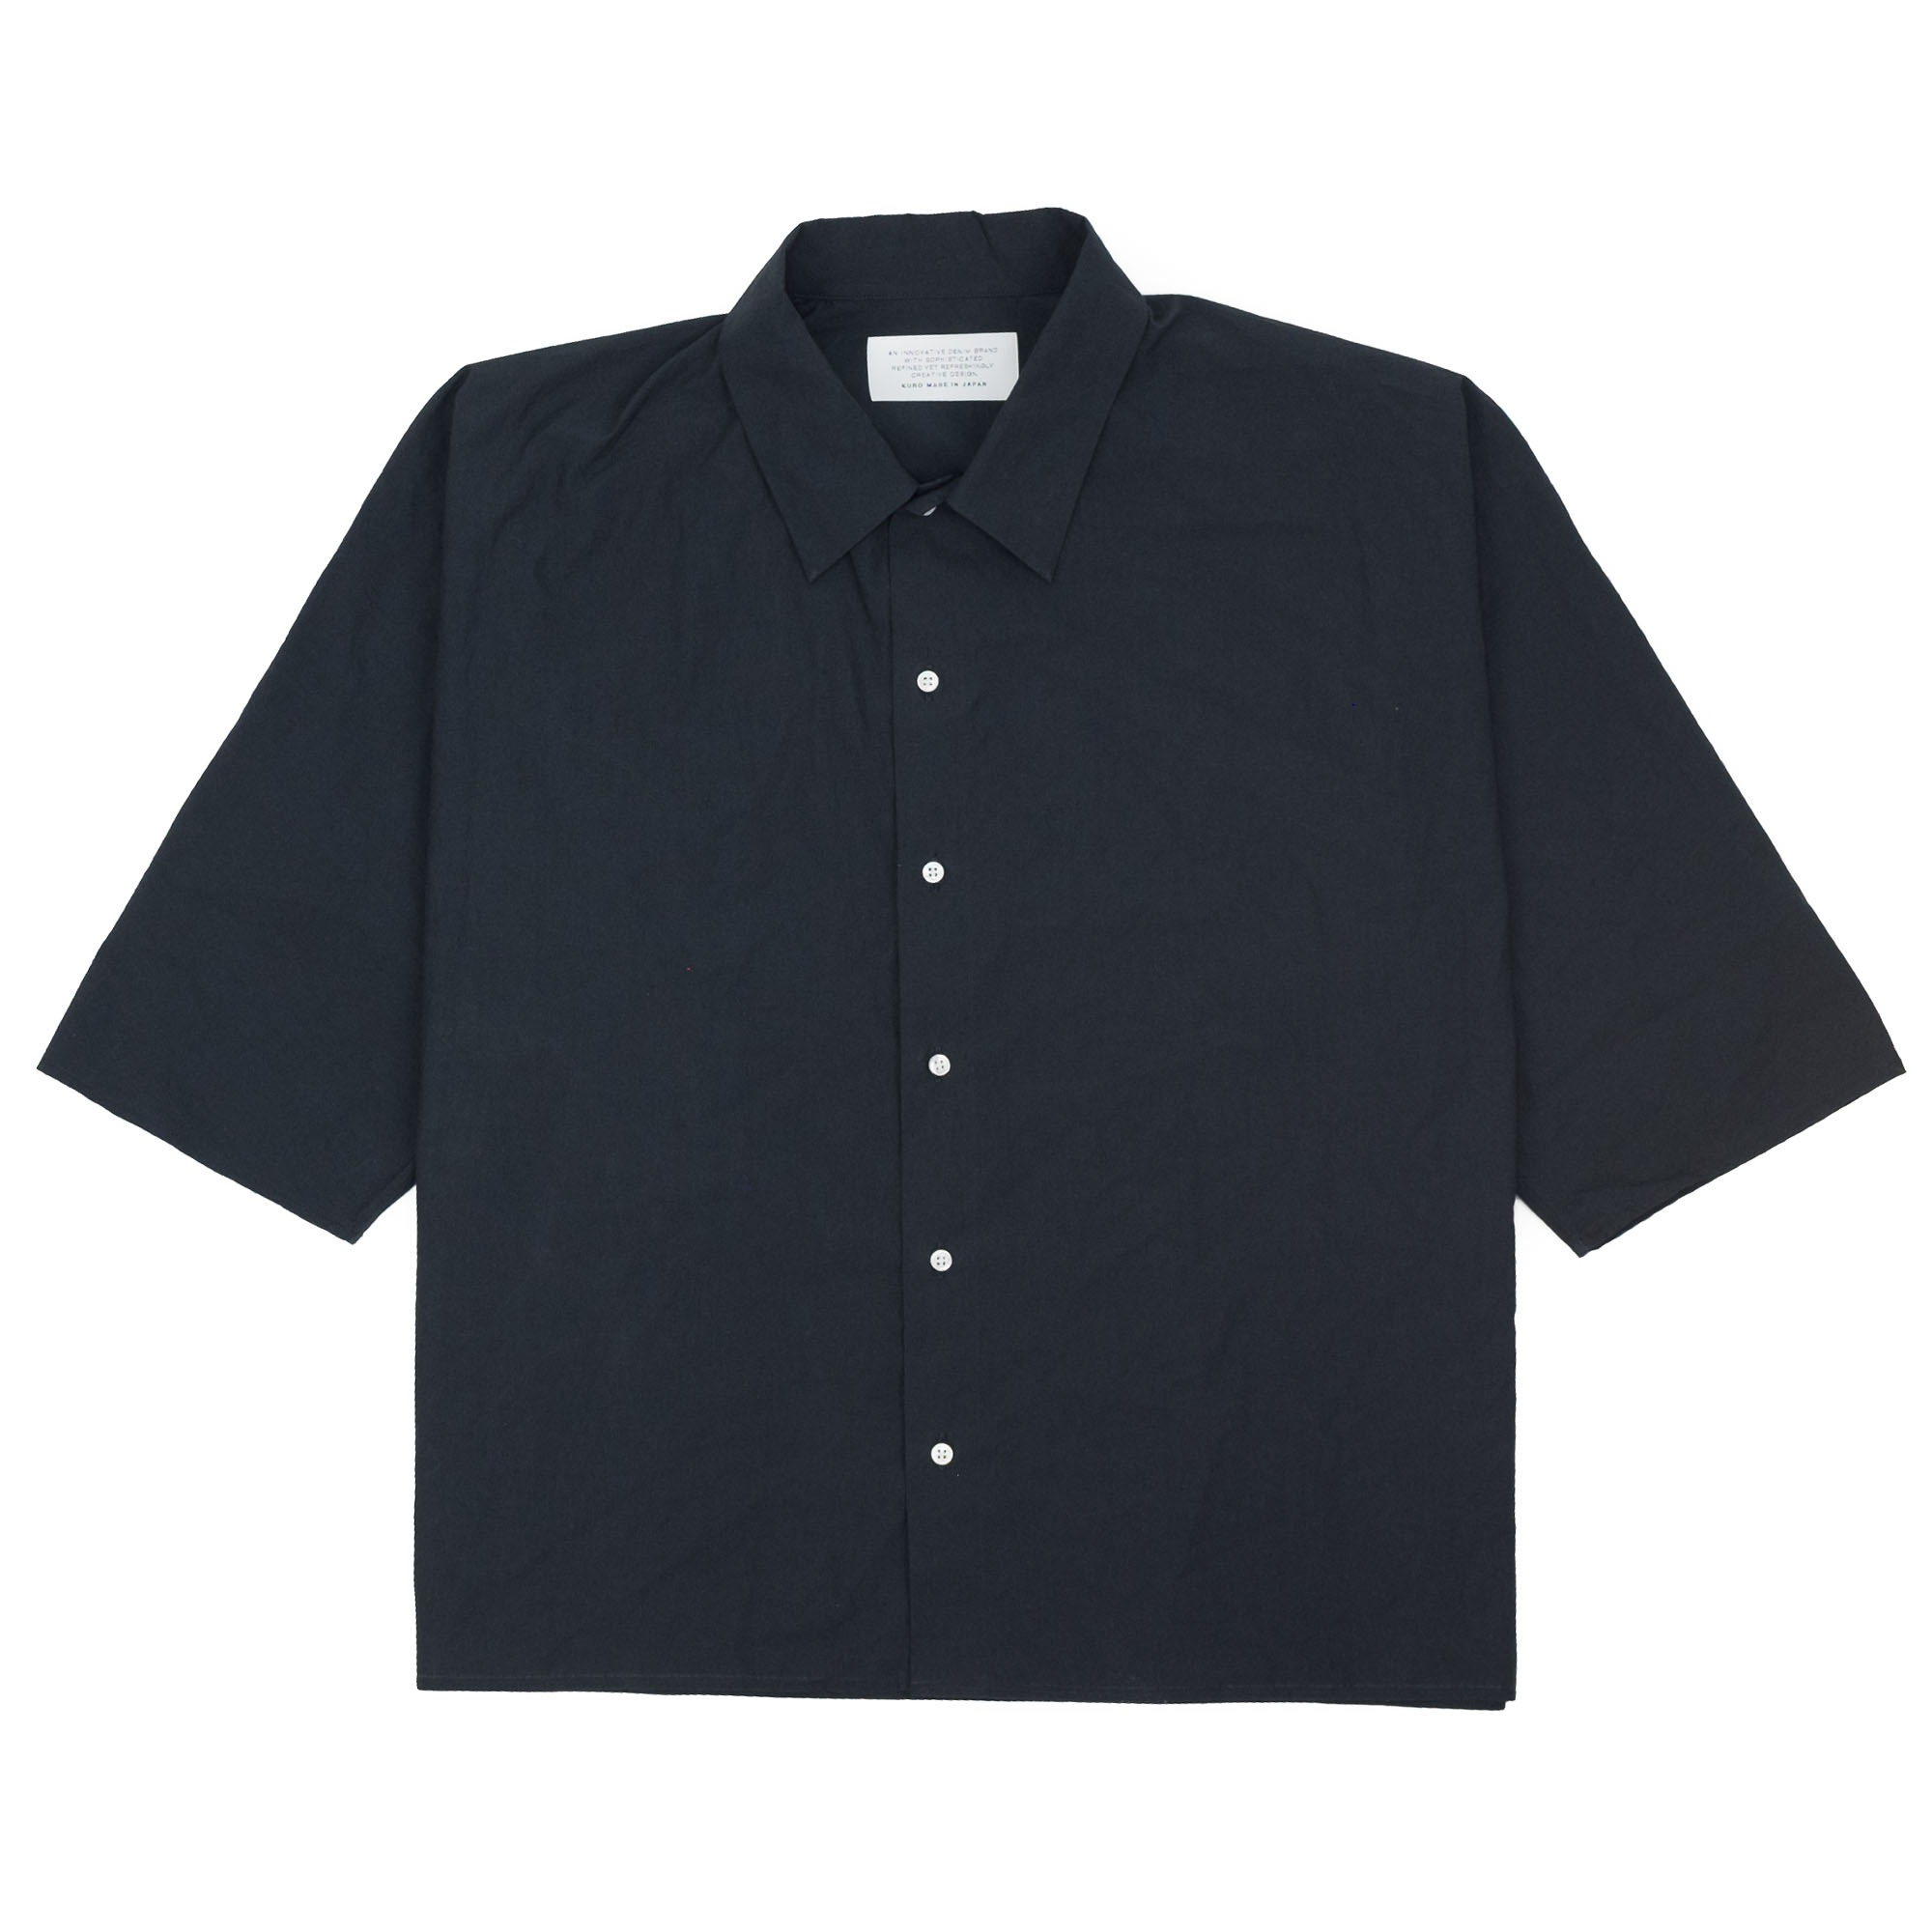 Dolman Sleeve S-S Shirt Black 1